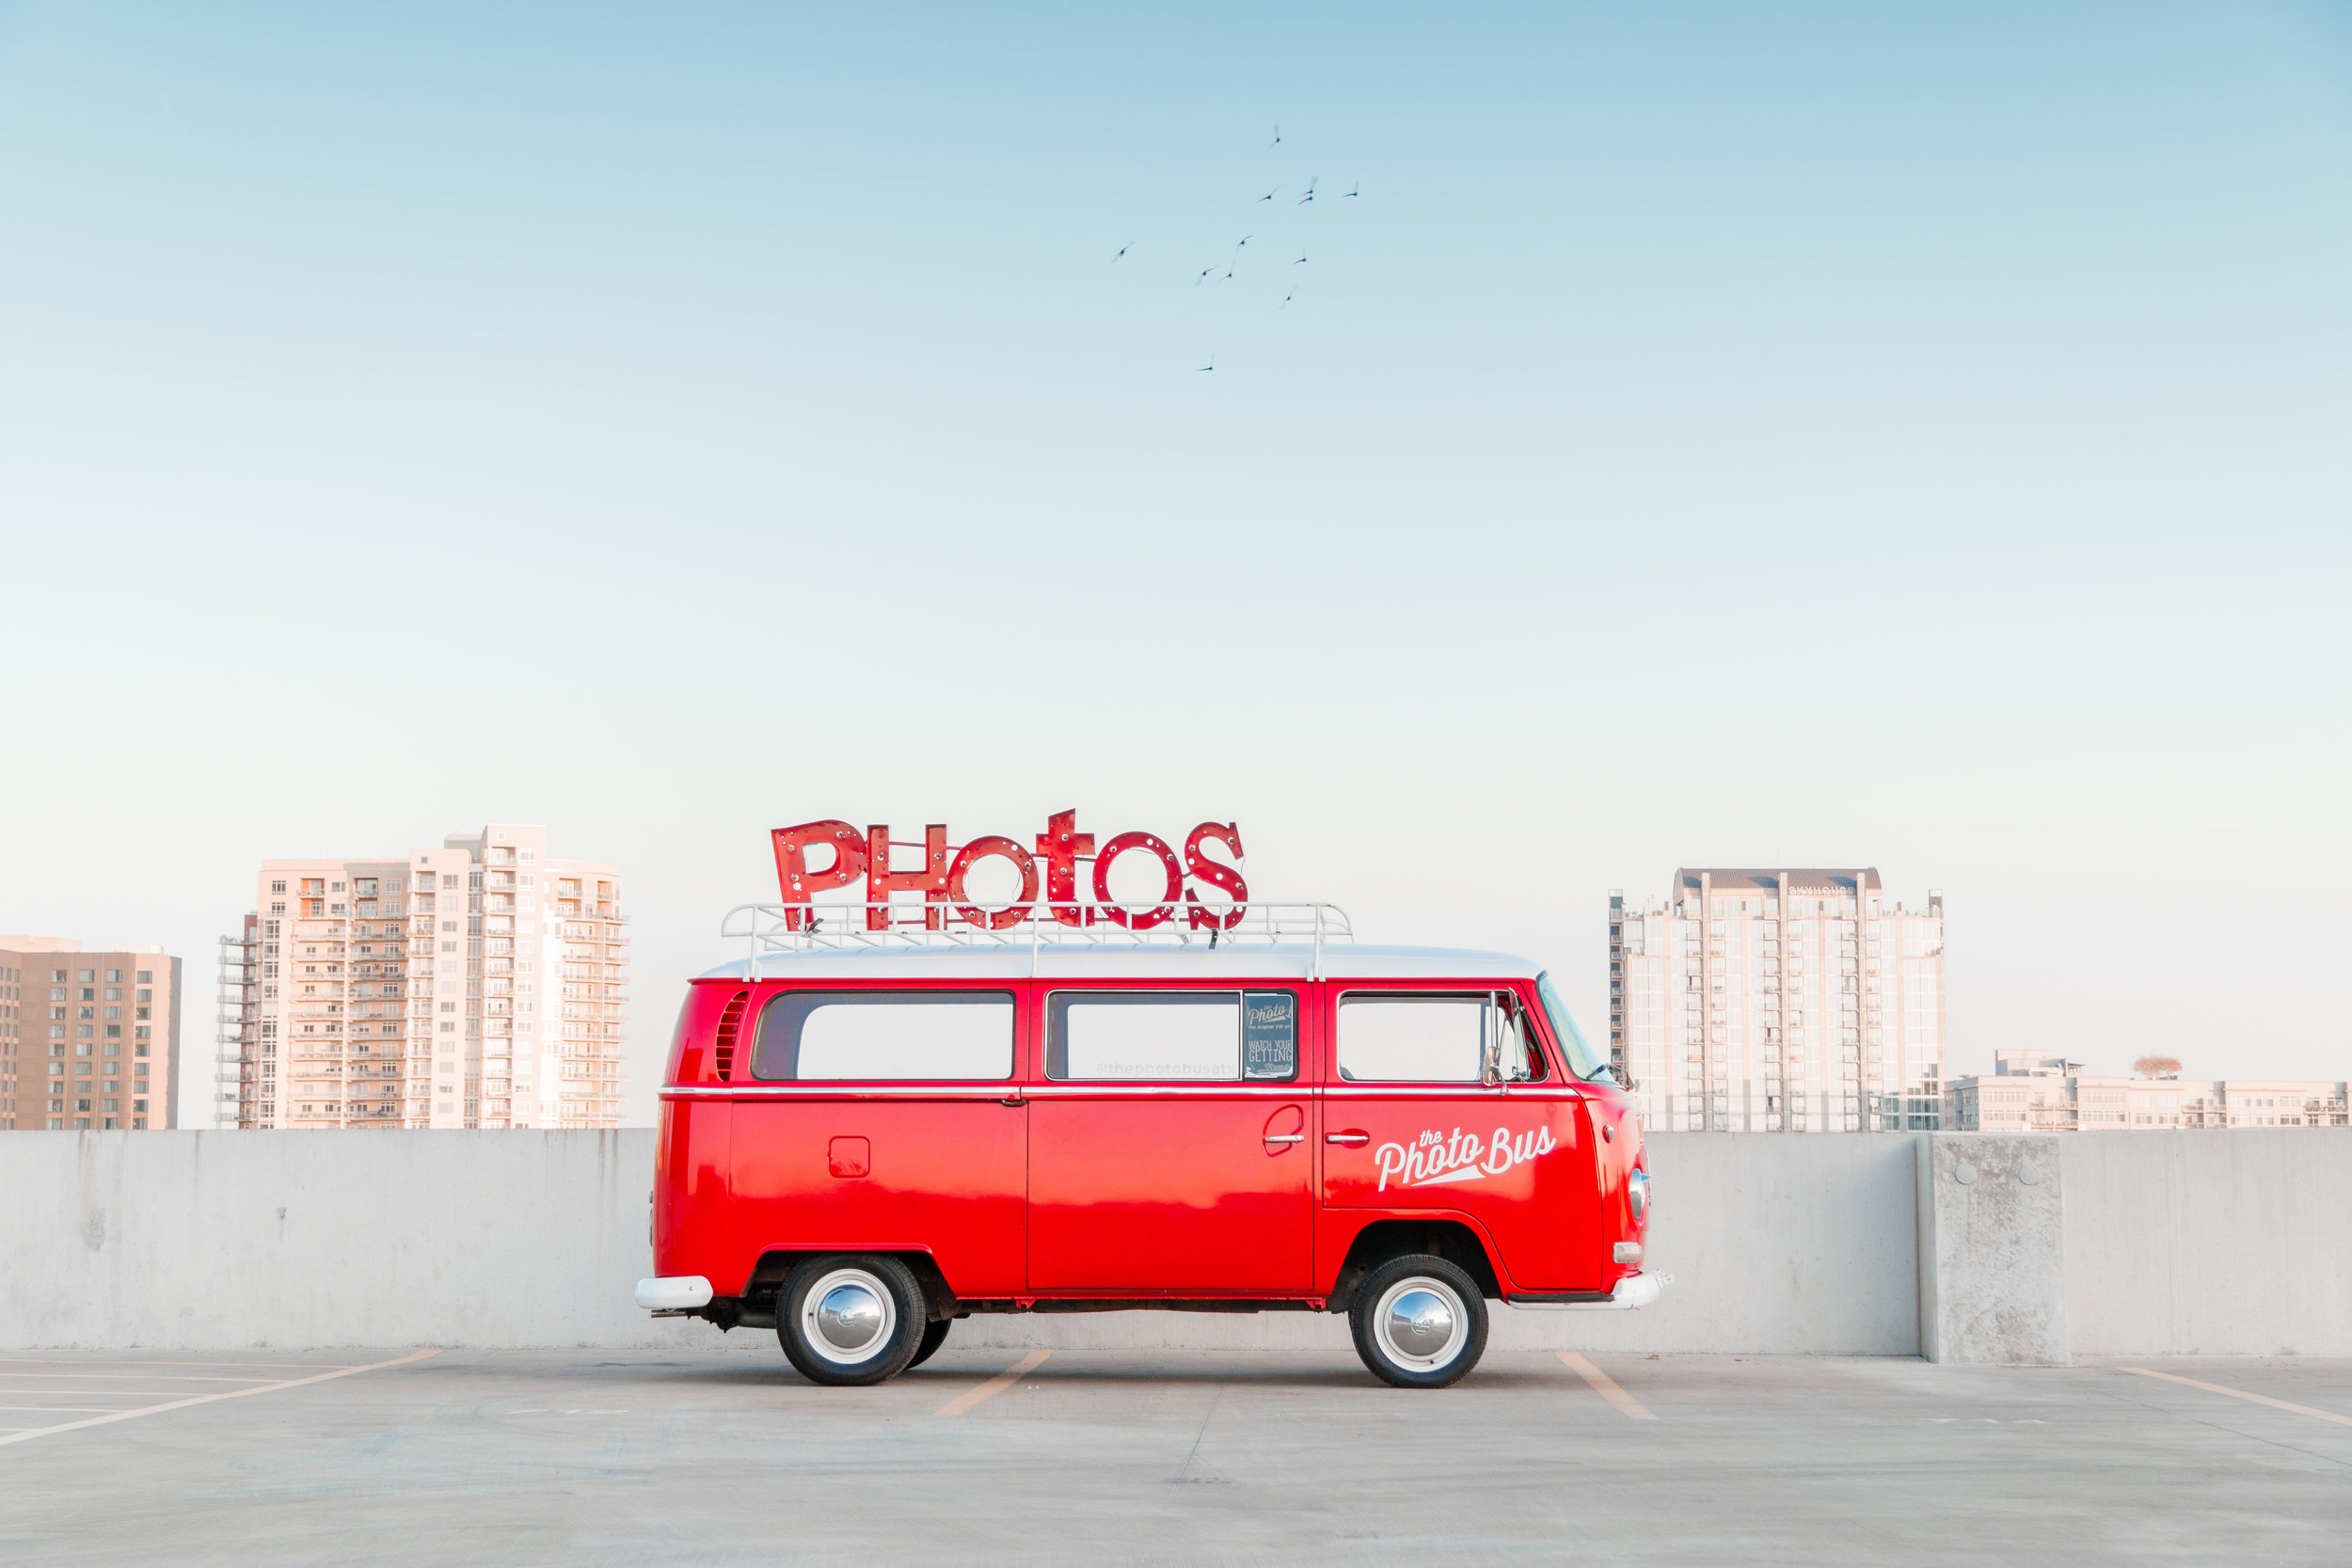 VIEW THE PHOTO BUS -